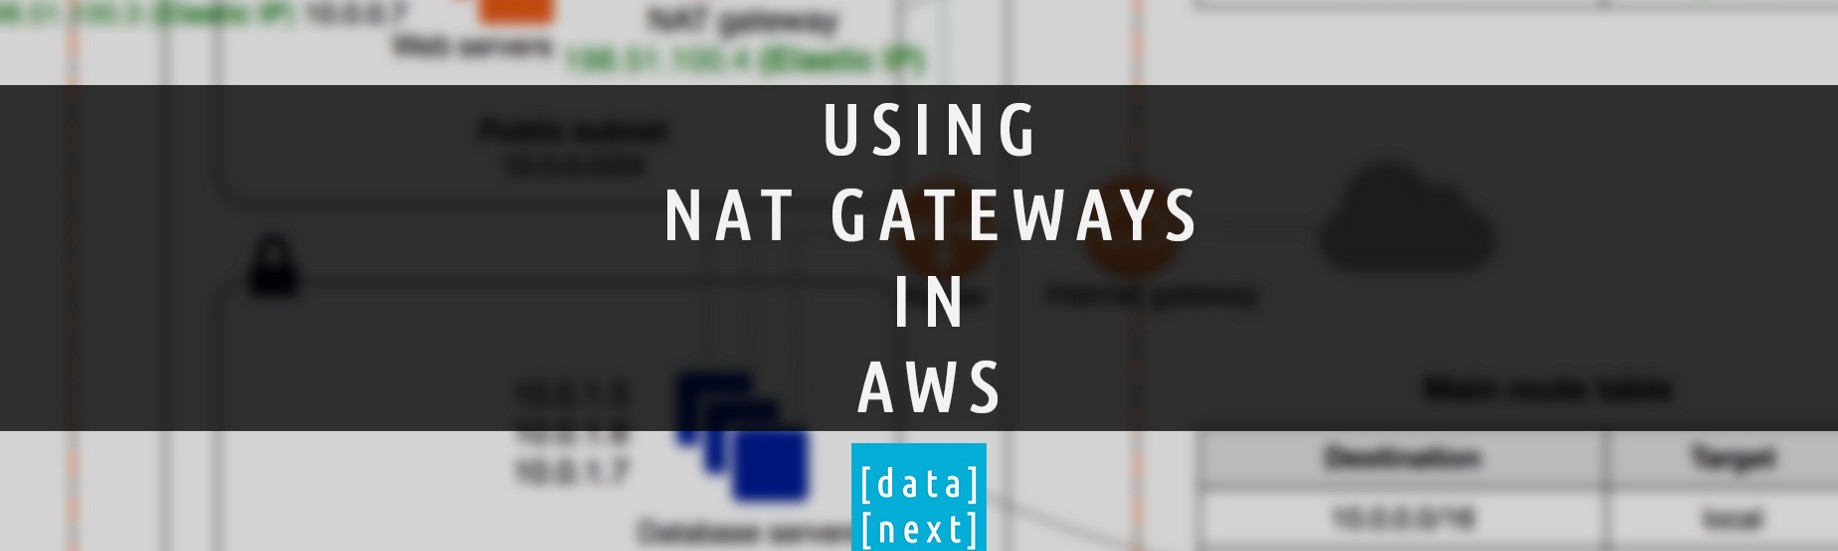 Using NAT Gateways in AWS | DataNext Solutions